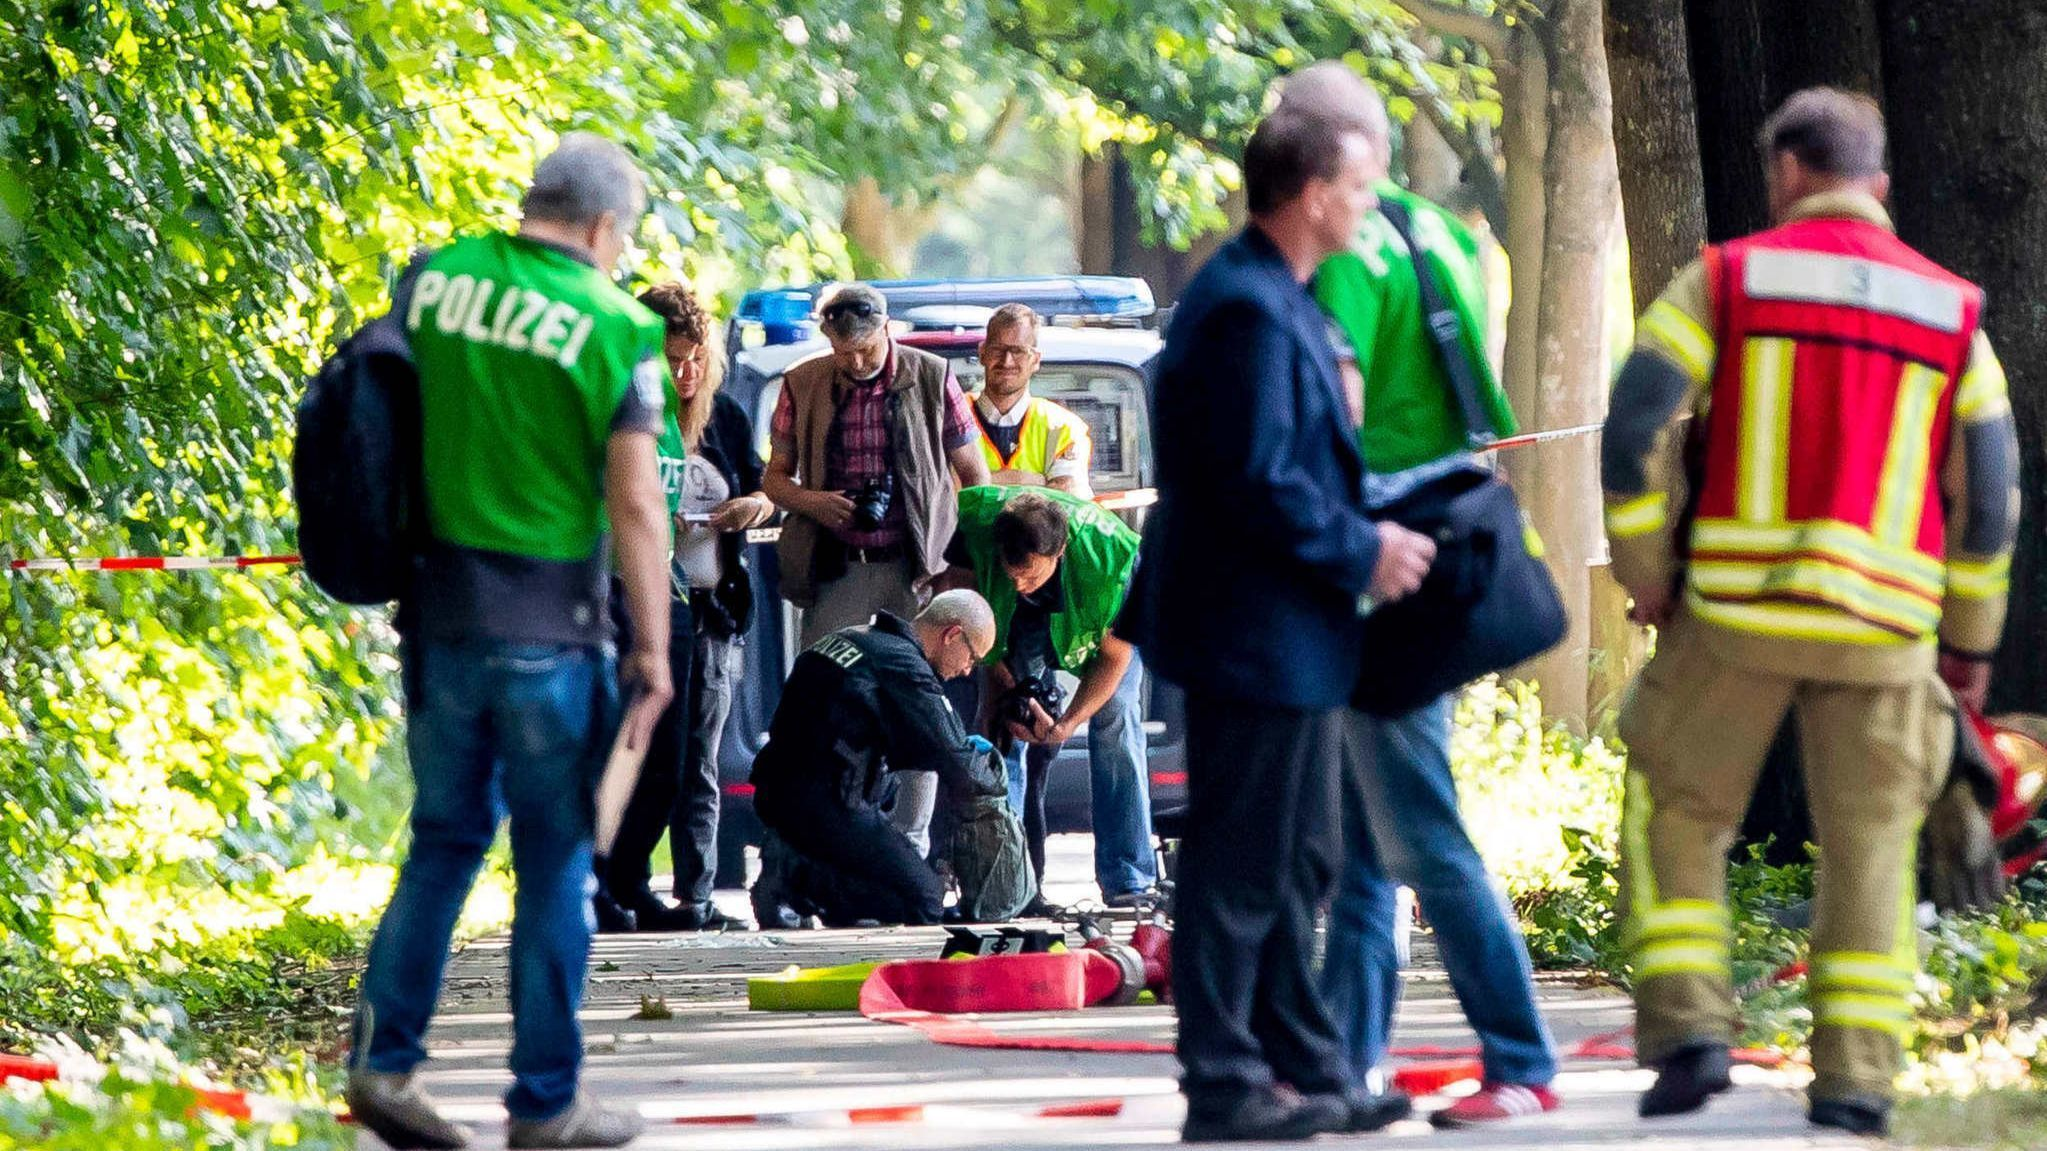 9 injured in knife attack on bus in Germany, suspect arrested